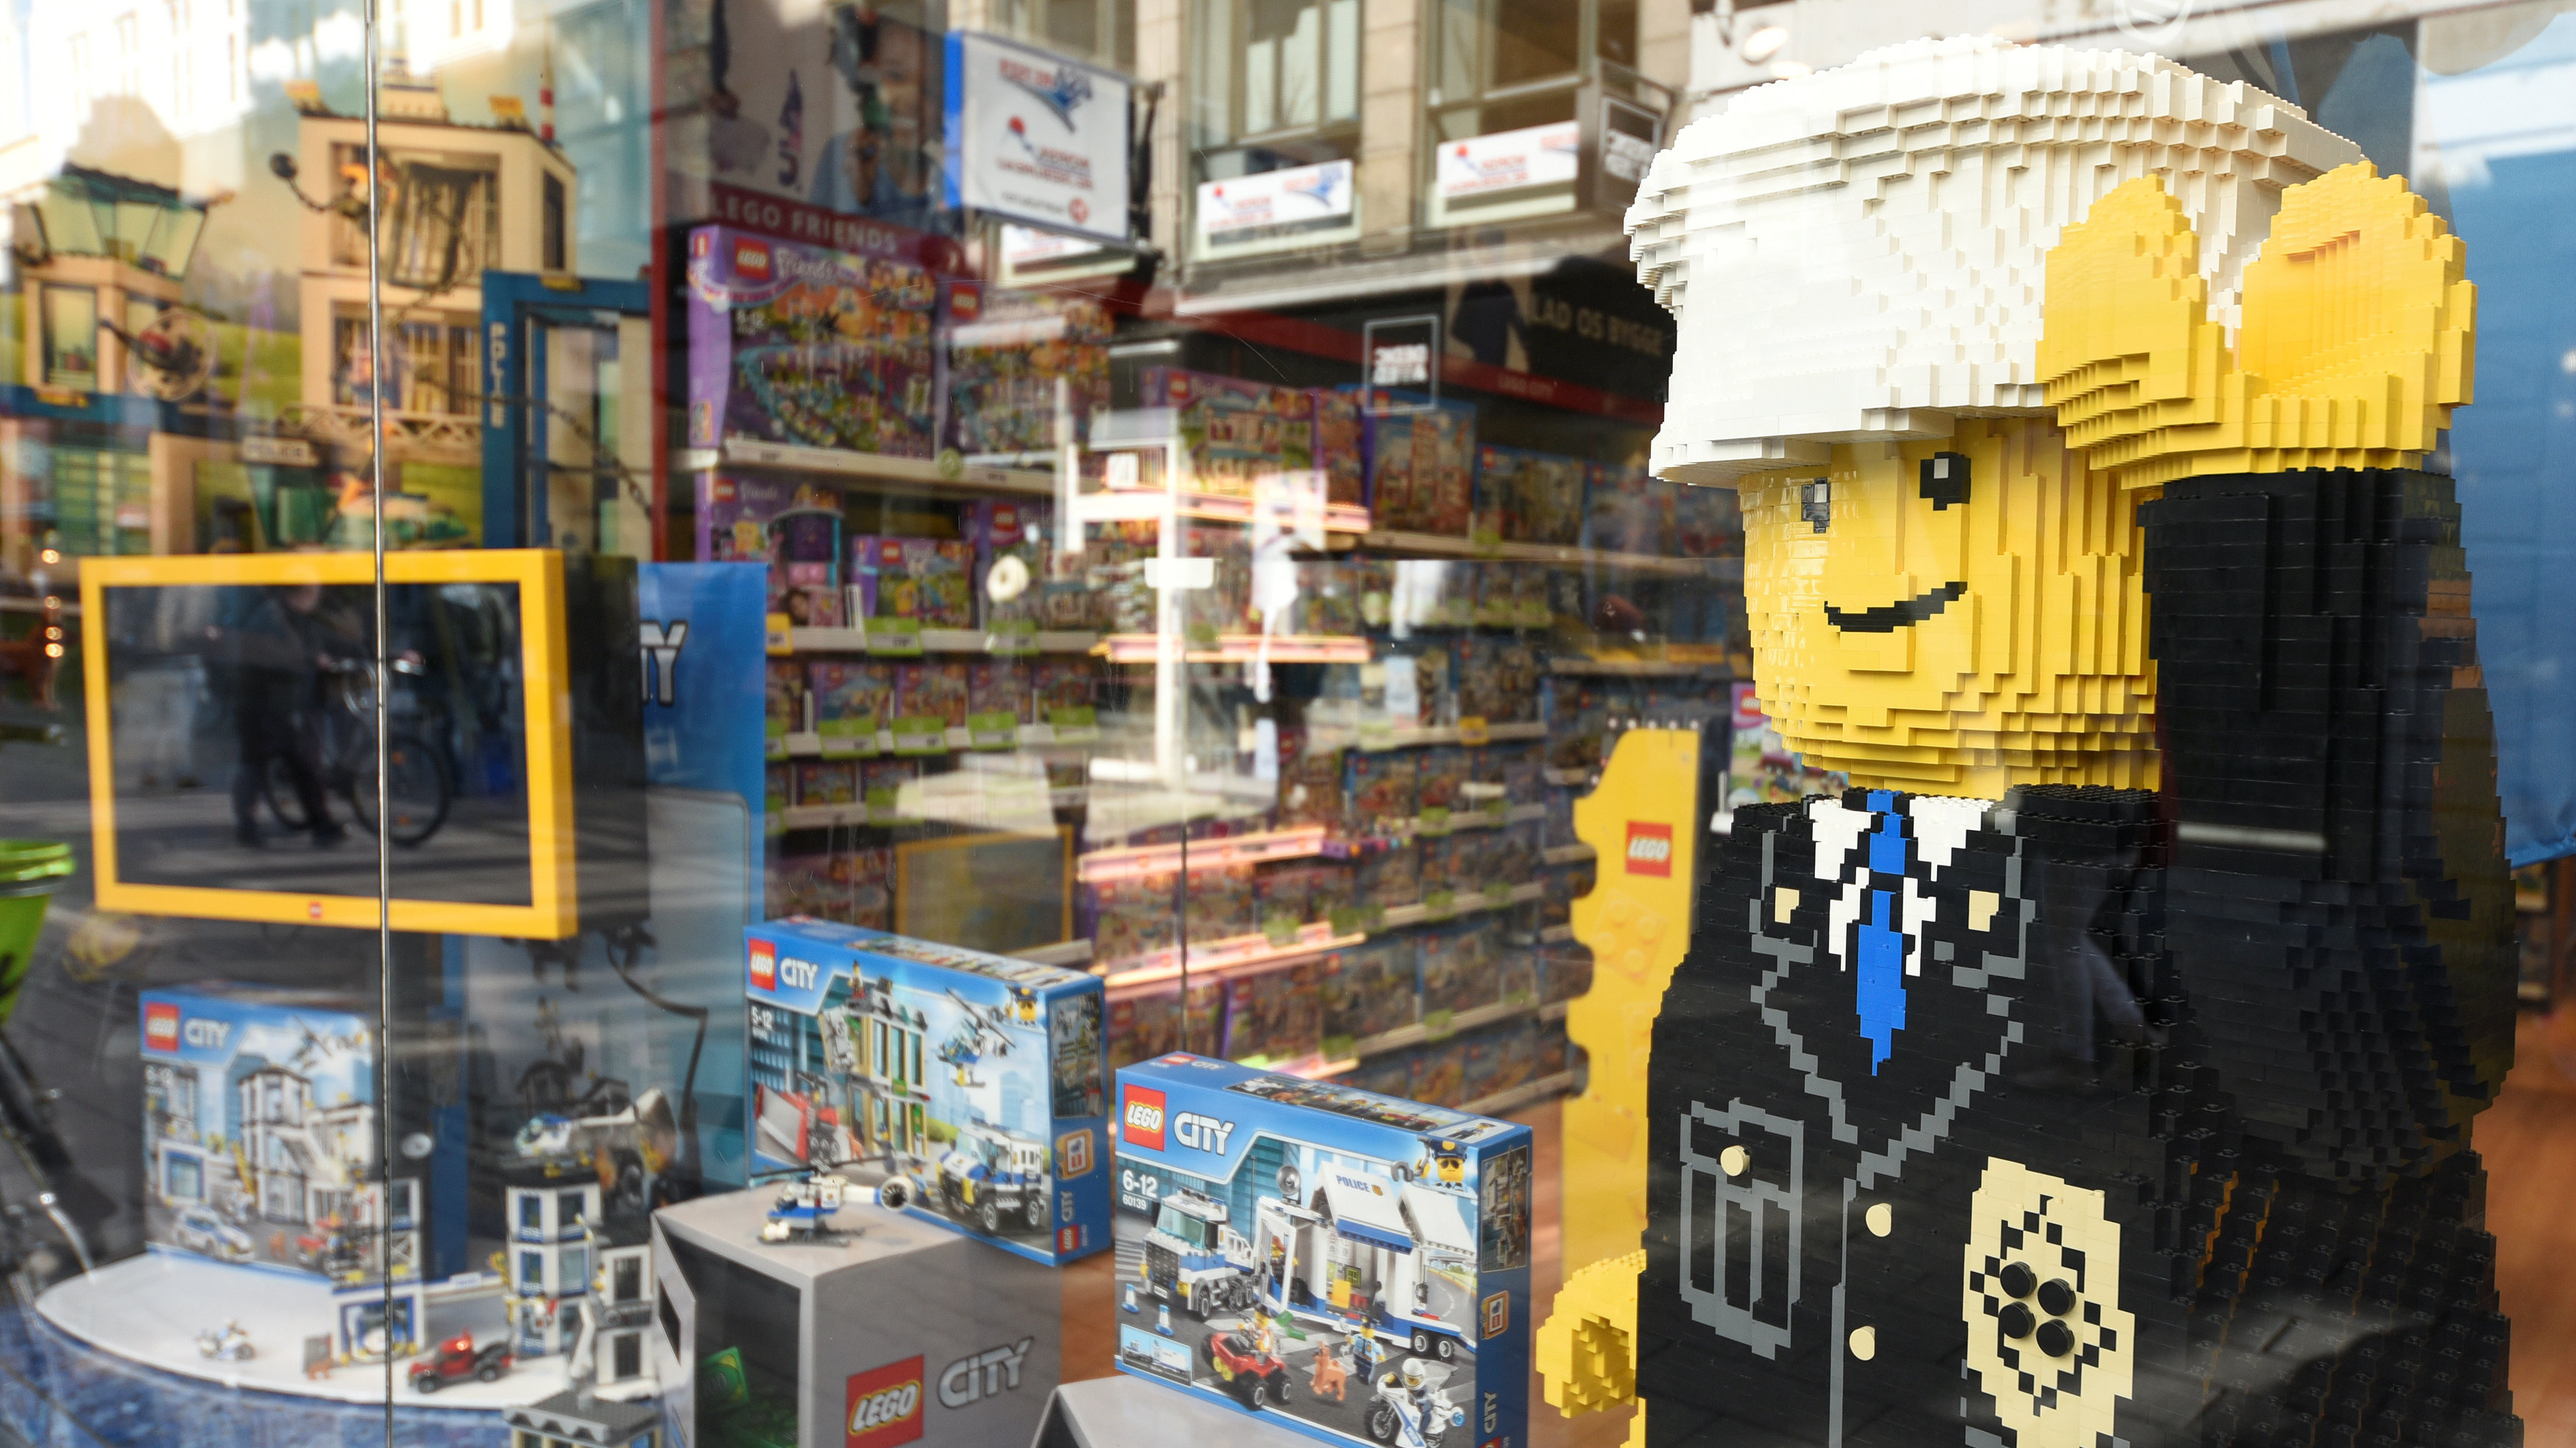 The window of a Lego shop is pictured in Copenhagen, Denmark April 19, 2017